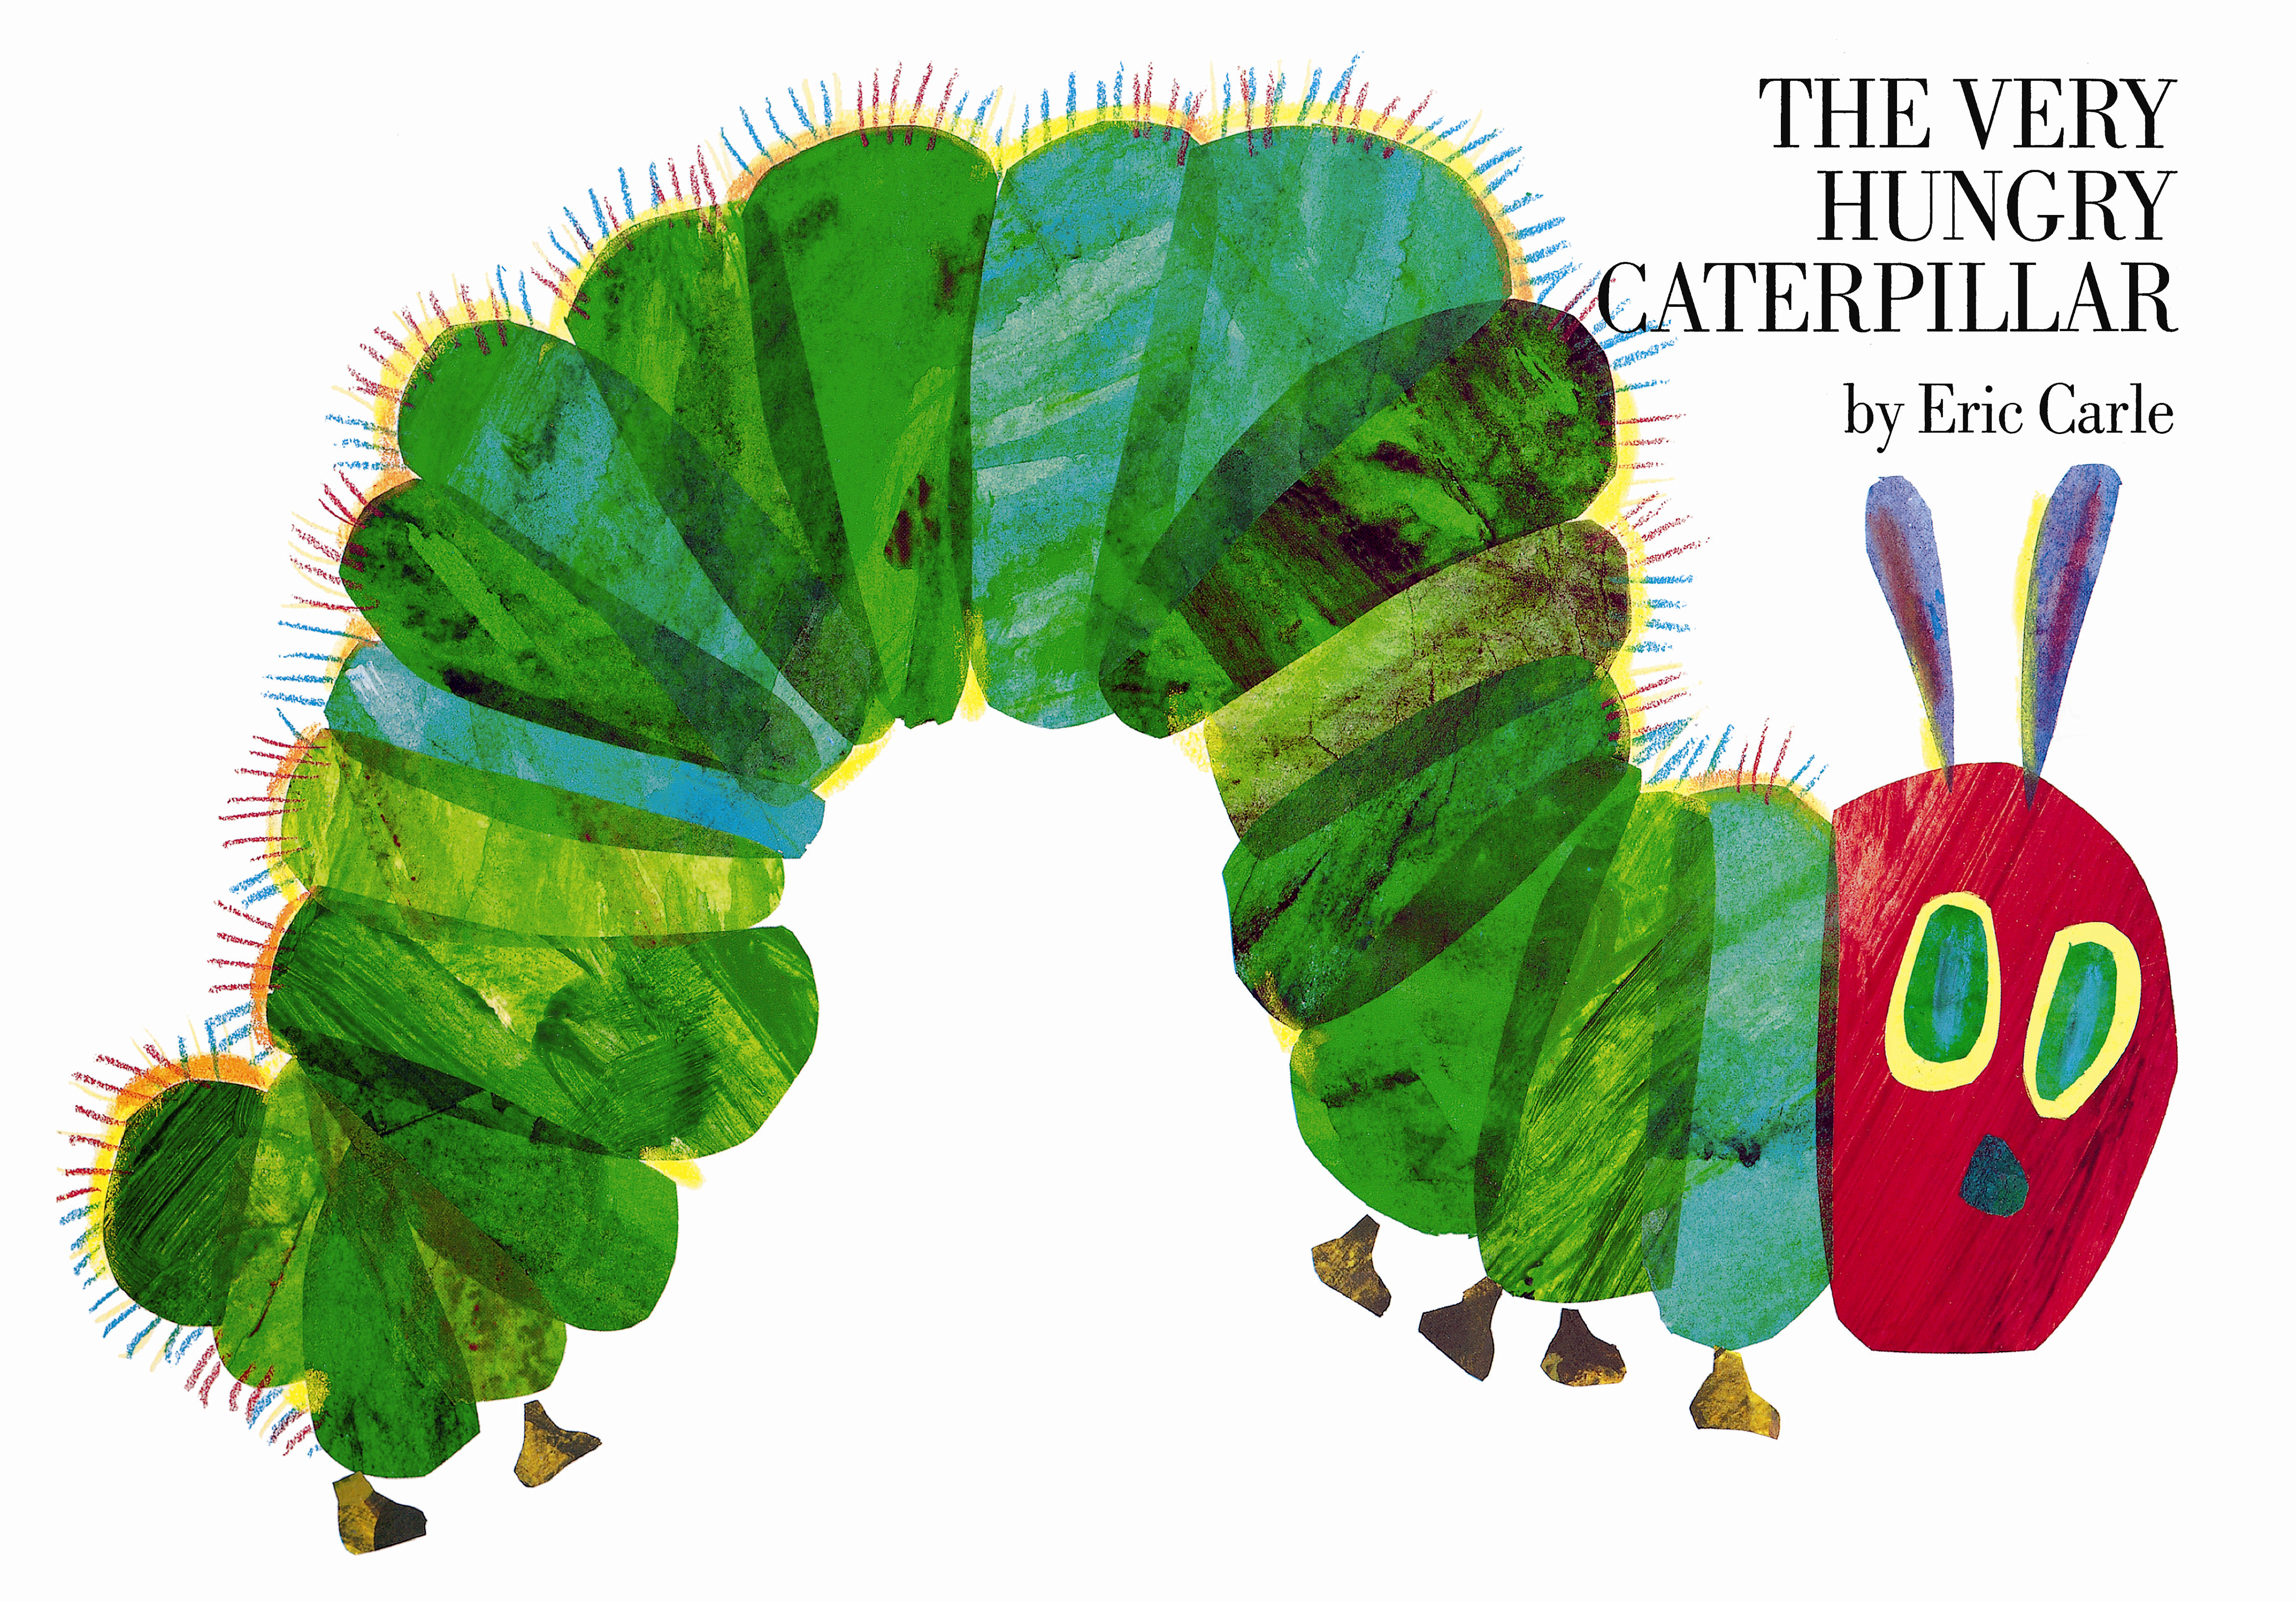 Fave Rave Petr Hora Ek On Eric Carle S The Very Hungry Caterpillar Kinderlit